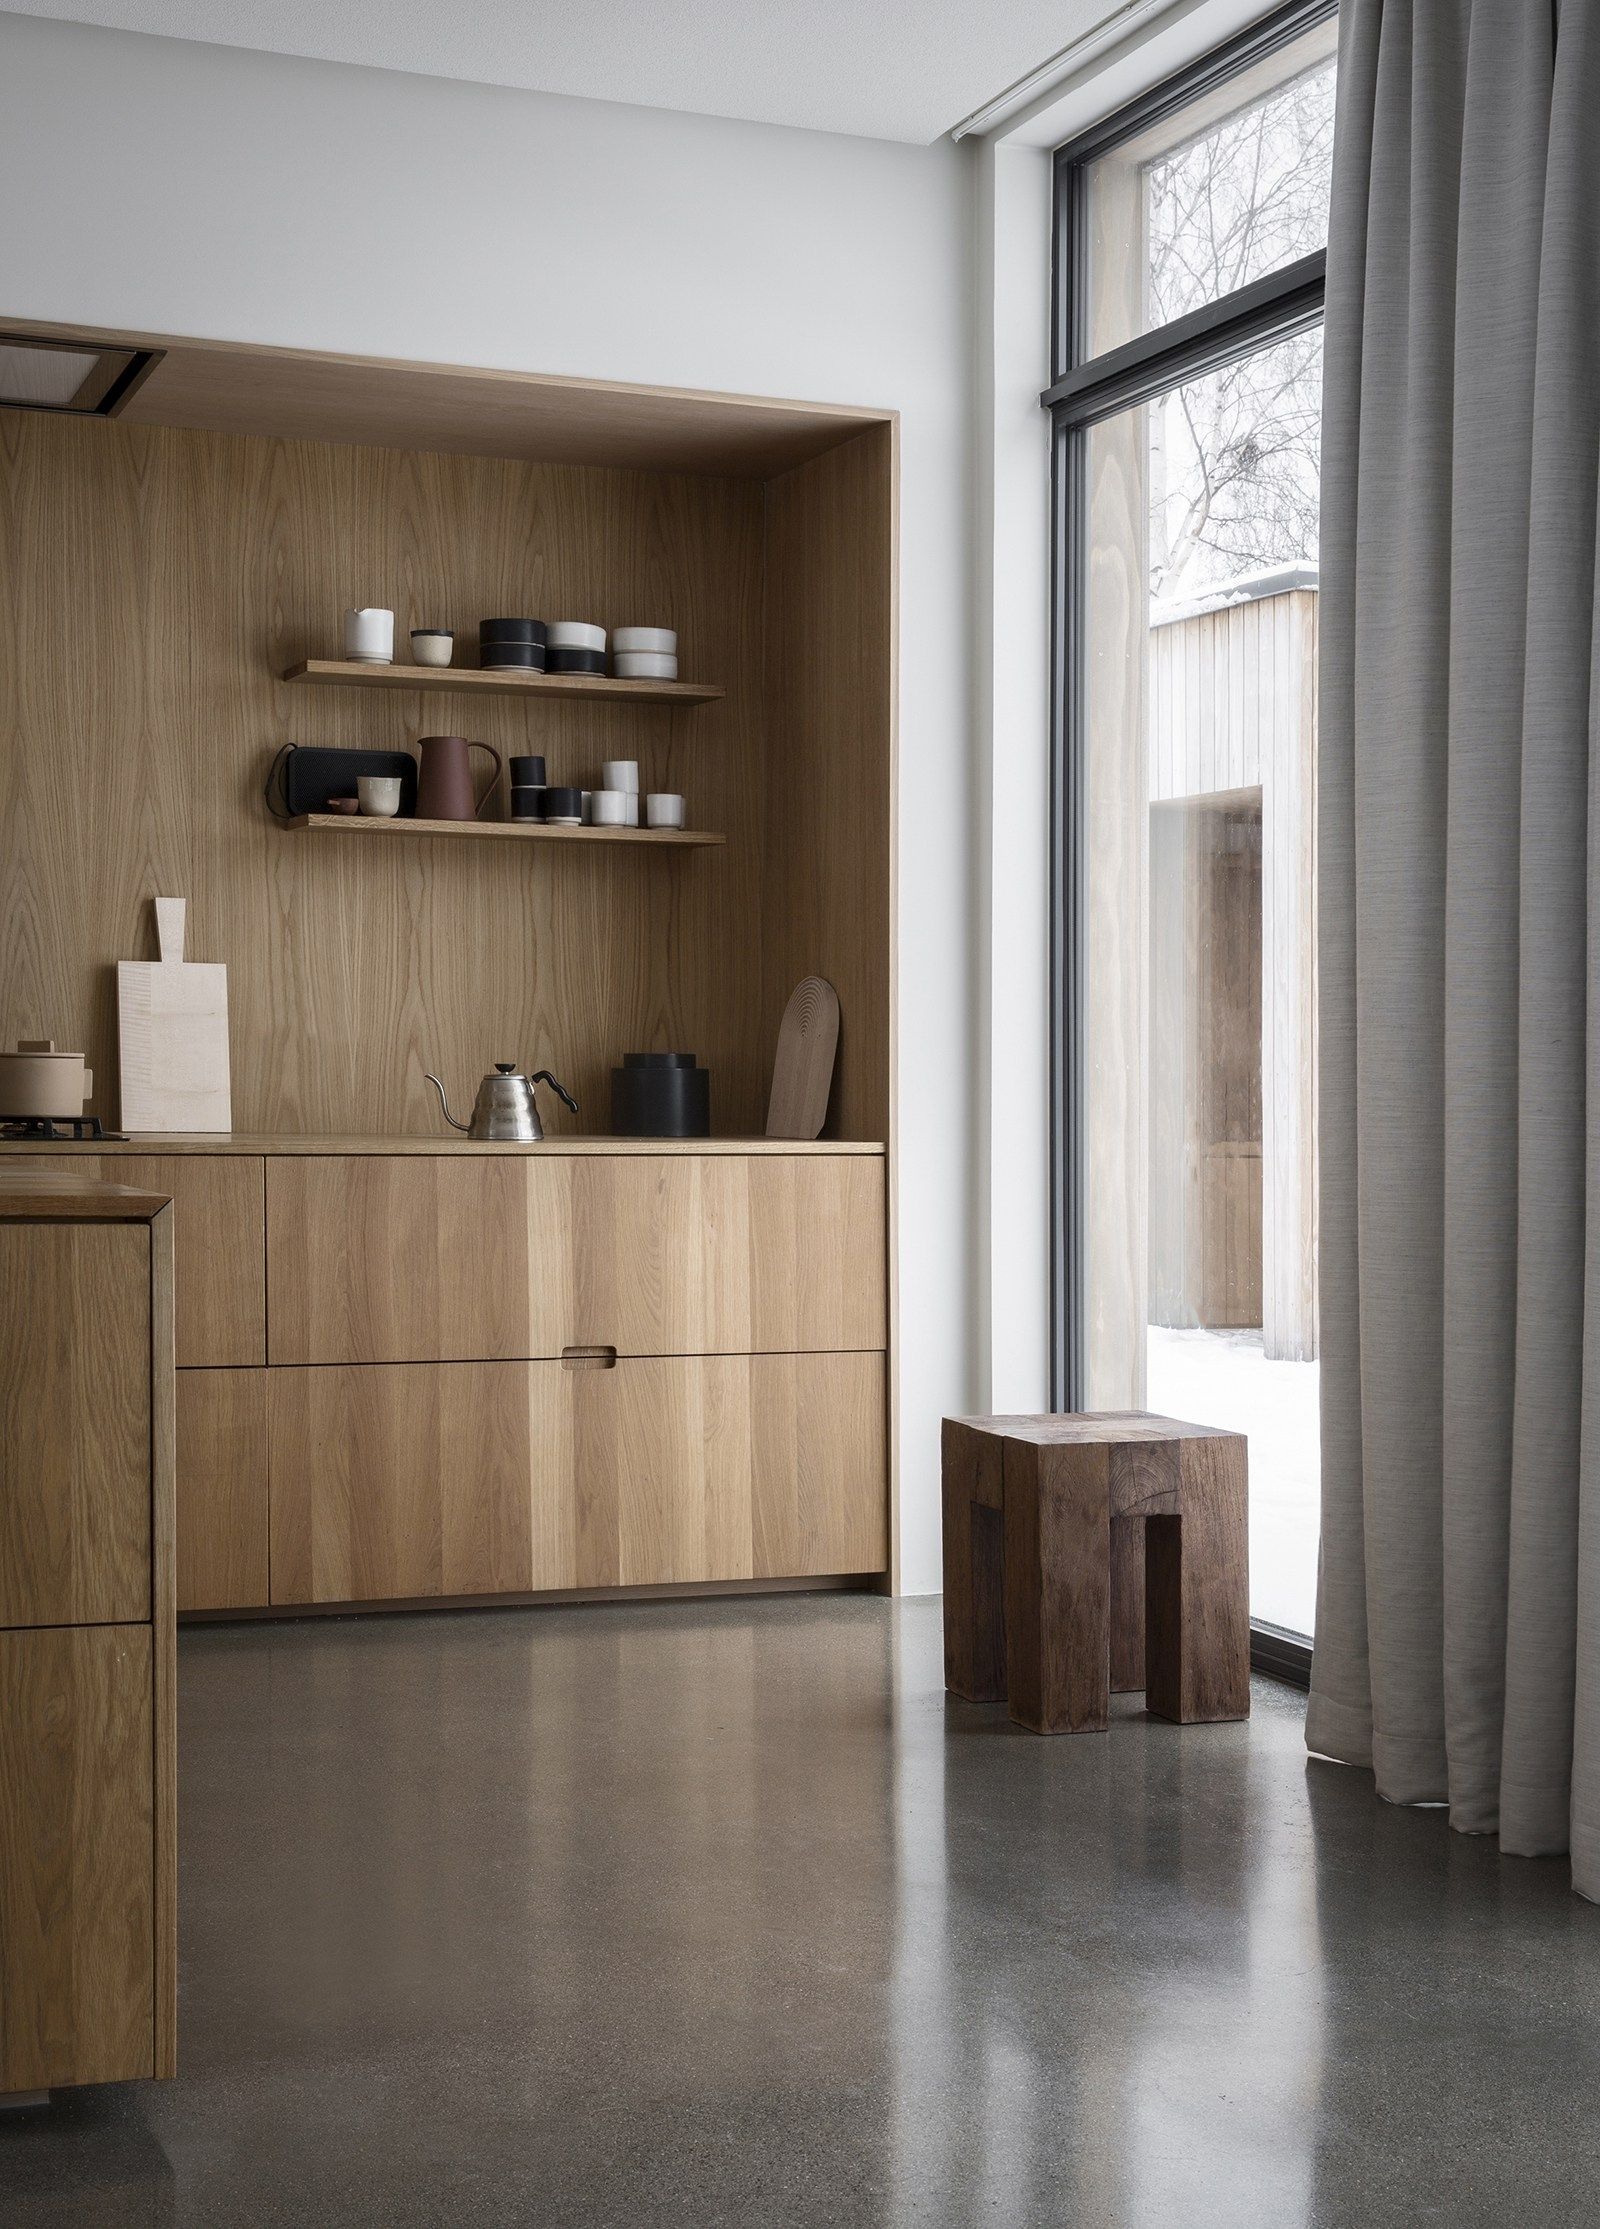 The Gjøvik House | House, Kitchens and Interiors